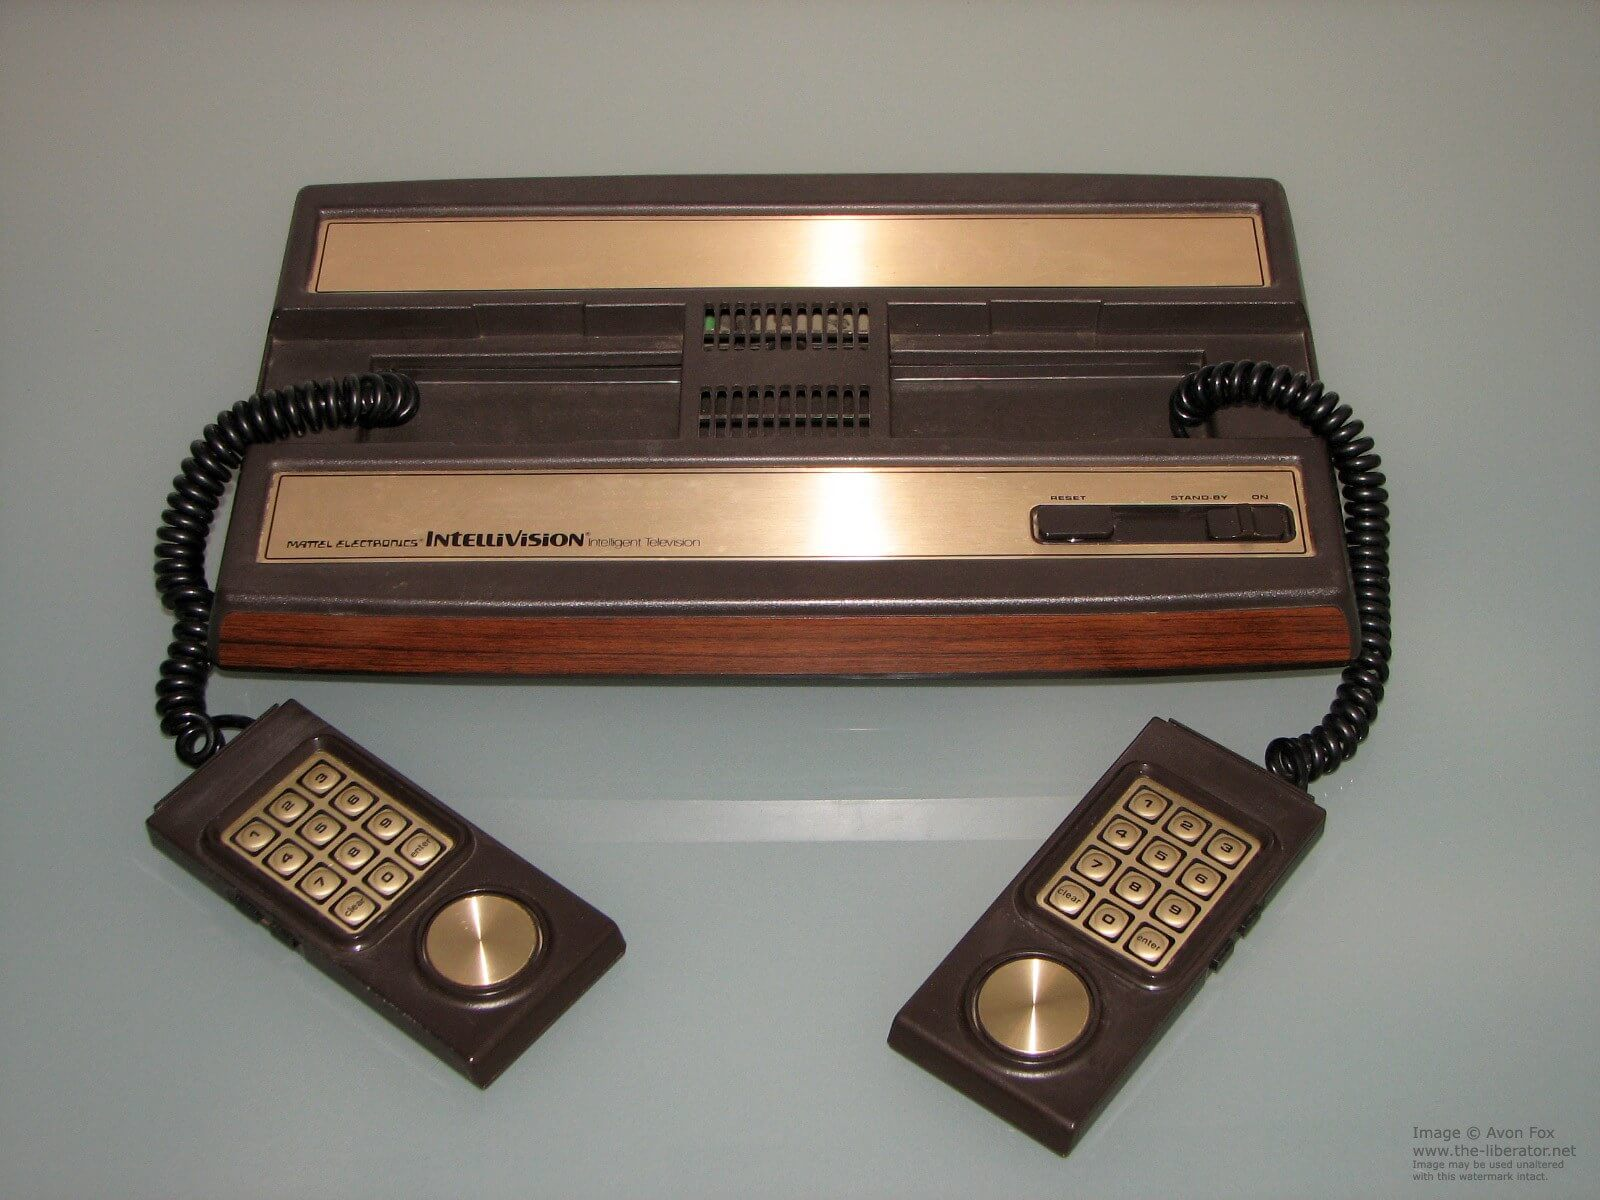 Video game music veteran Tommy Tallarico acquires Intellivision